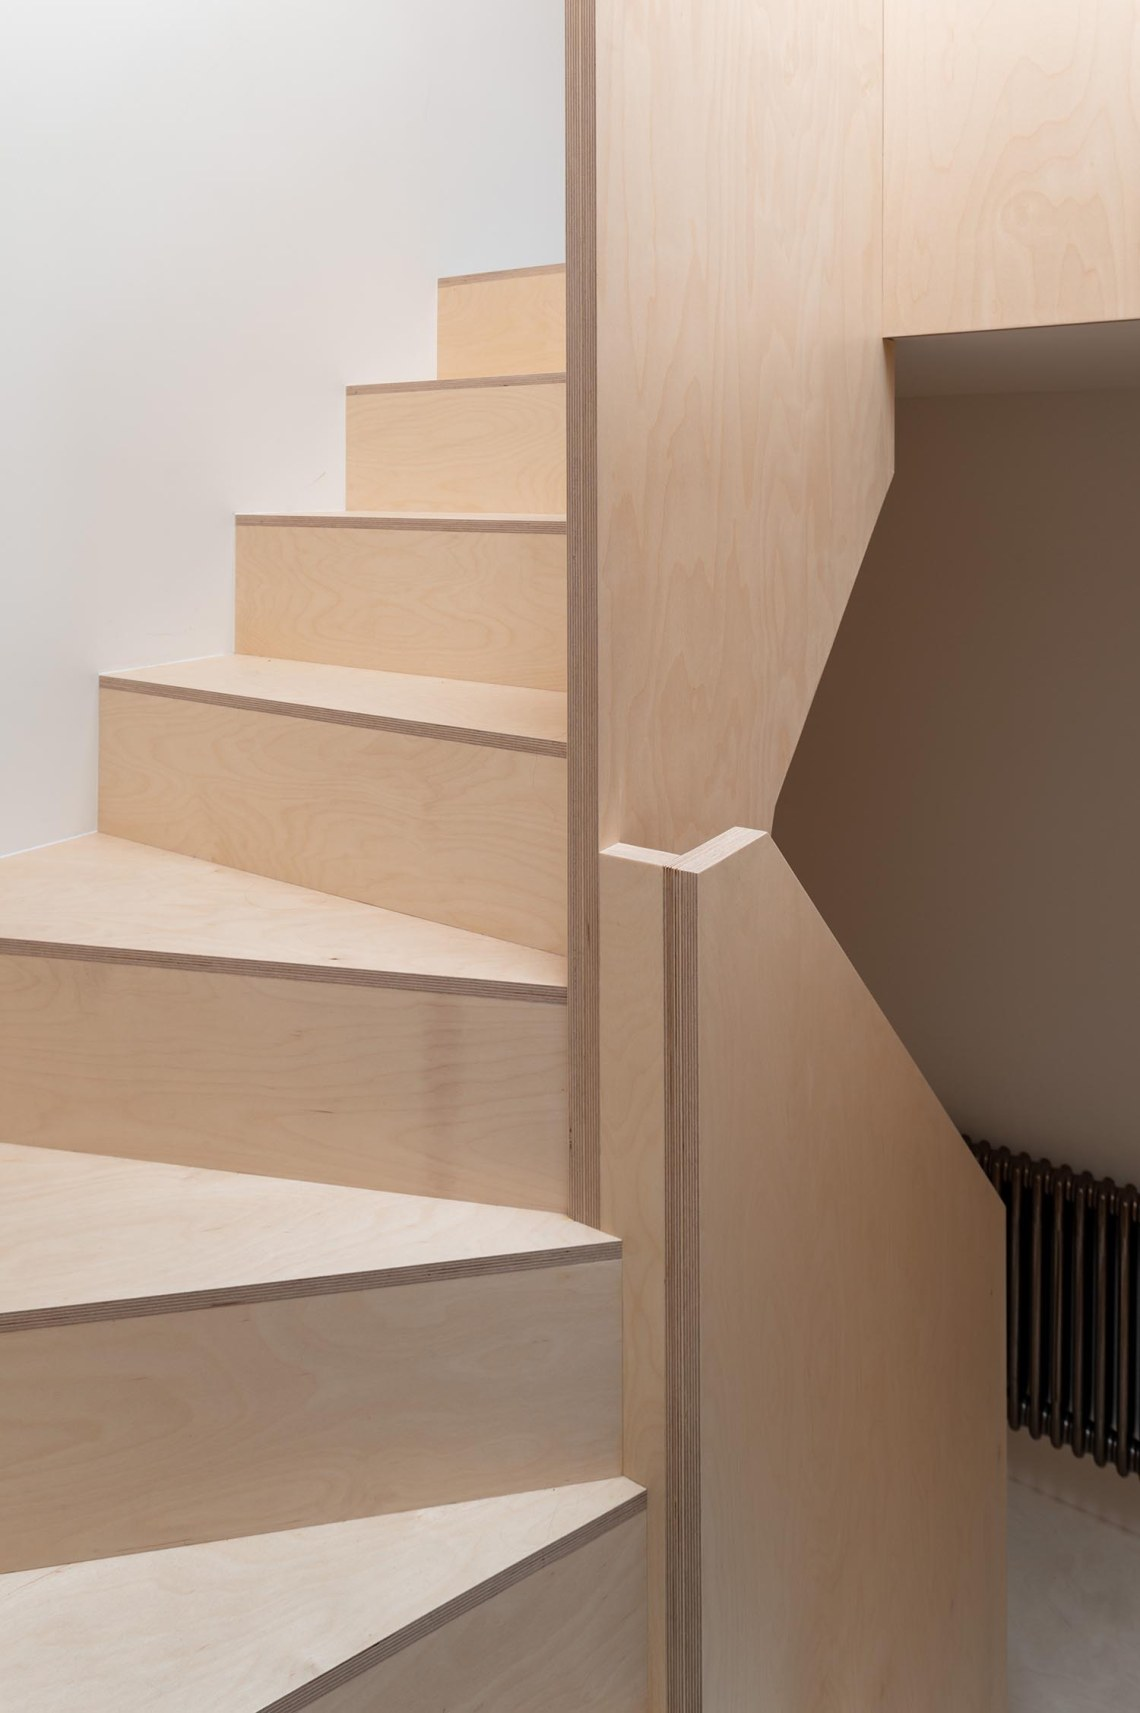 BVDS Architects Two and a half story house staircase hallway solid ply balustrade handrail steps